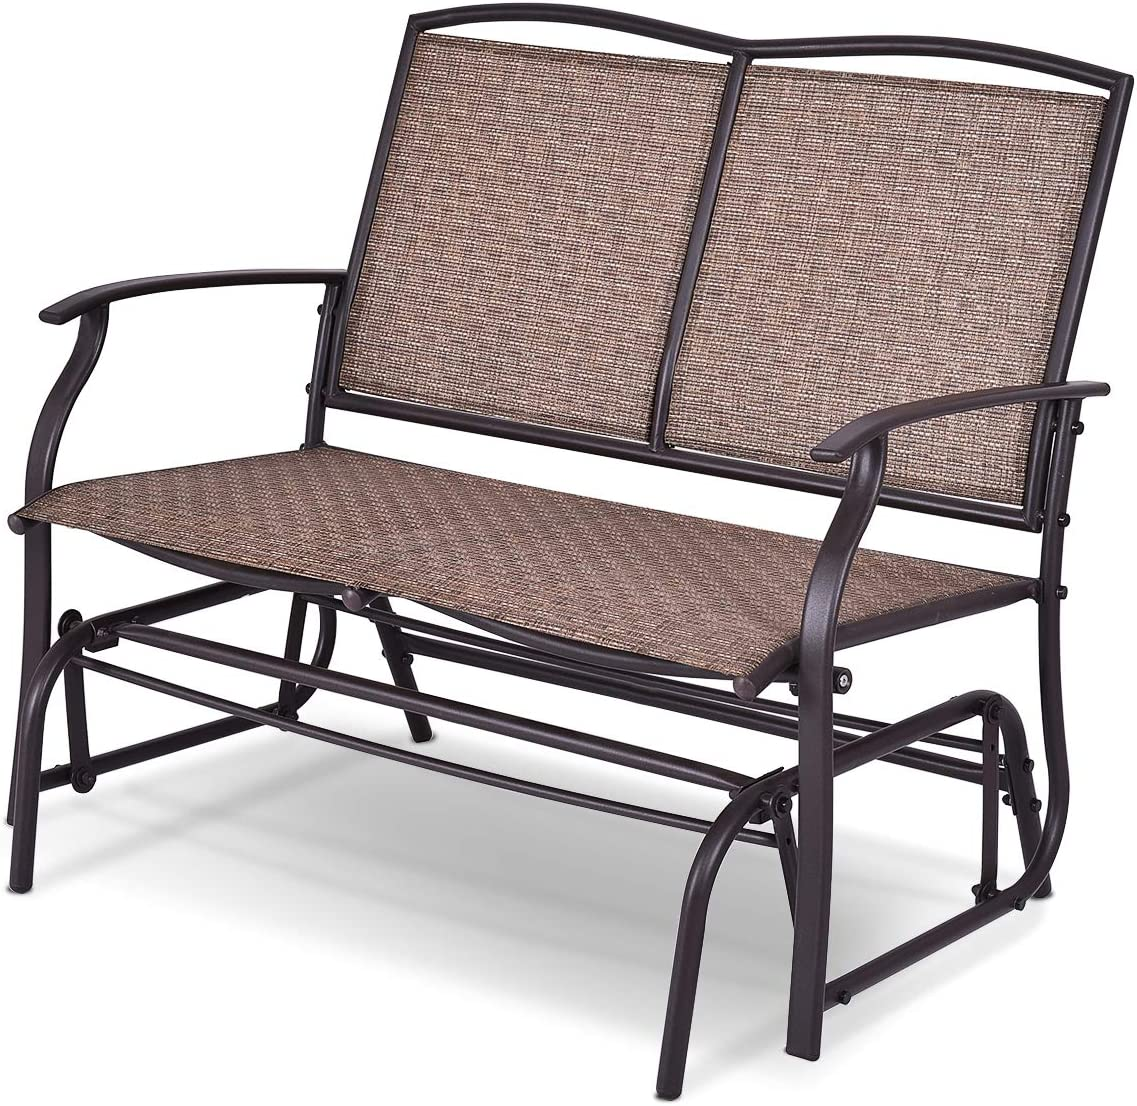 Happygrill Patio Glider Chair Bench